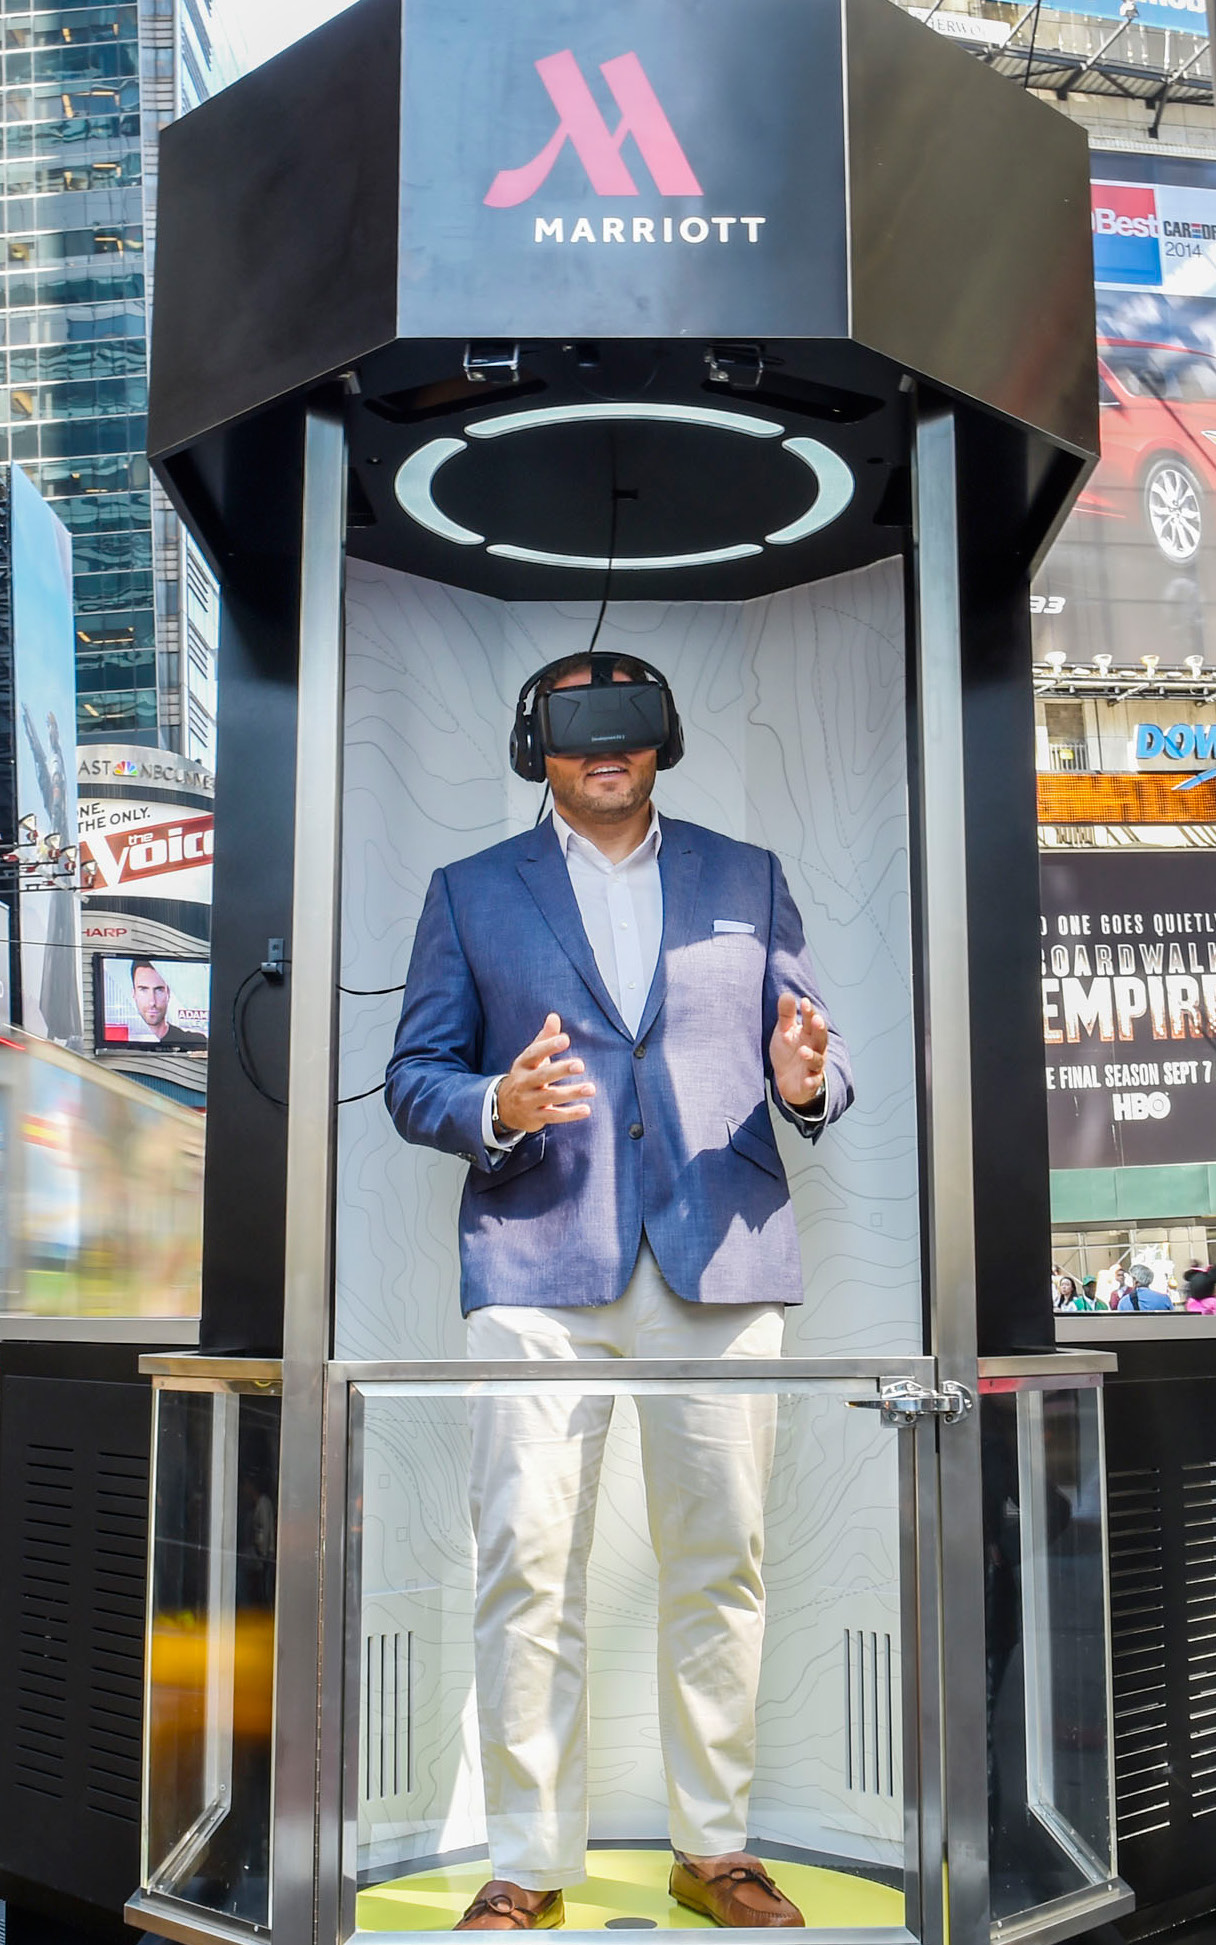 SIGNALS Immersive marketing In late 2014, Marriott Hotels launched the Teleporter, a virtual-reality experience that allows users to transport virtually to London or Hawaii.